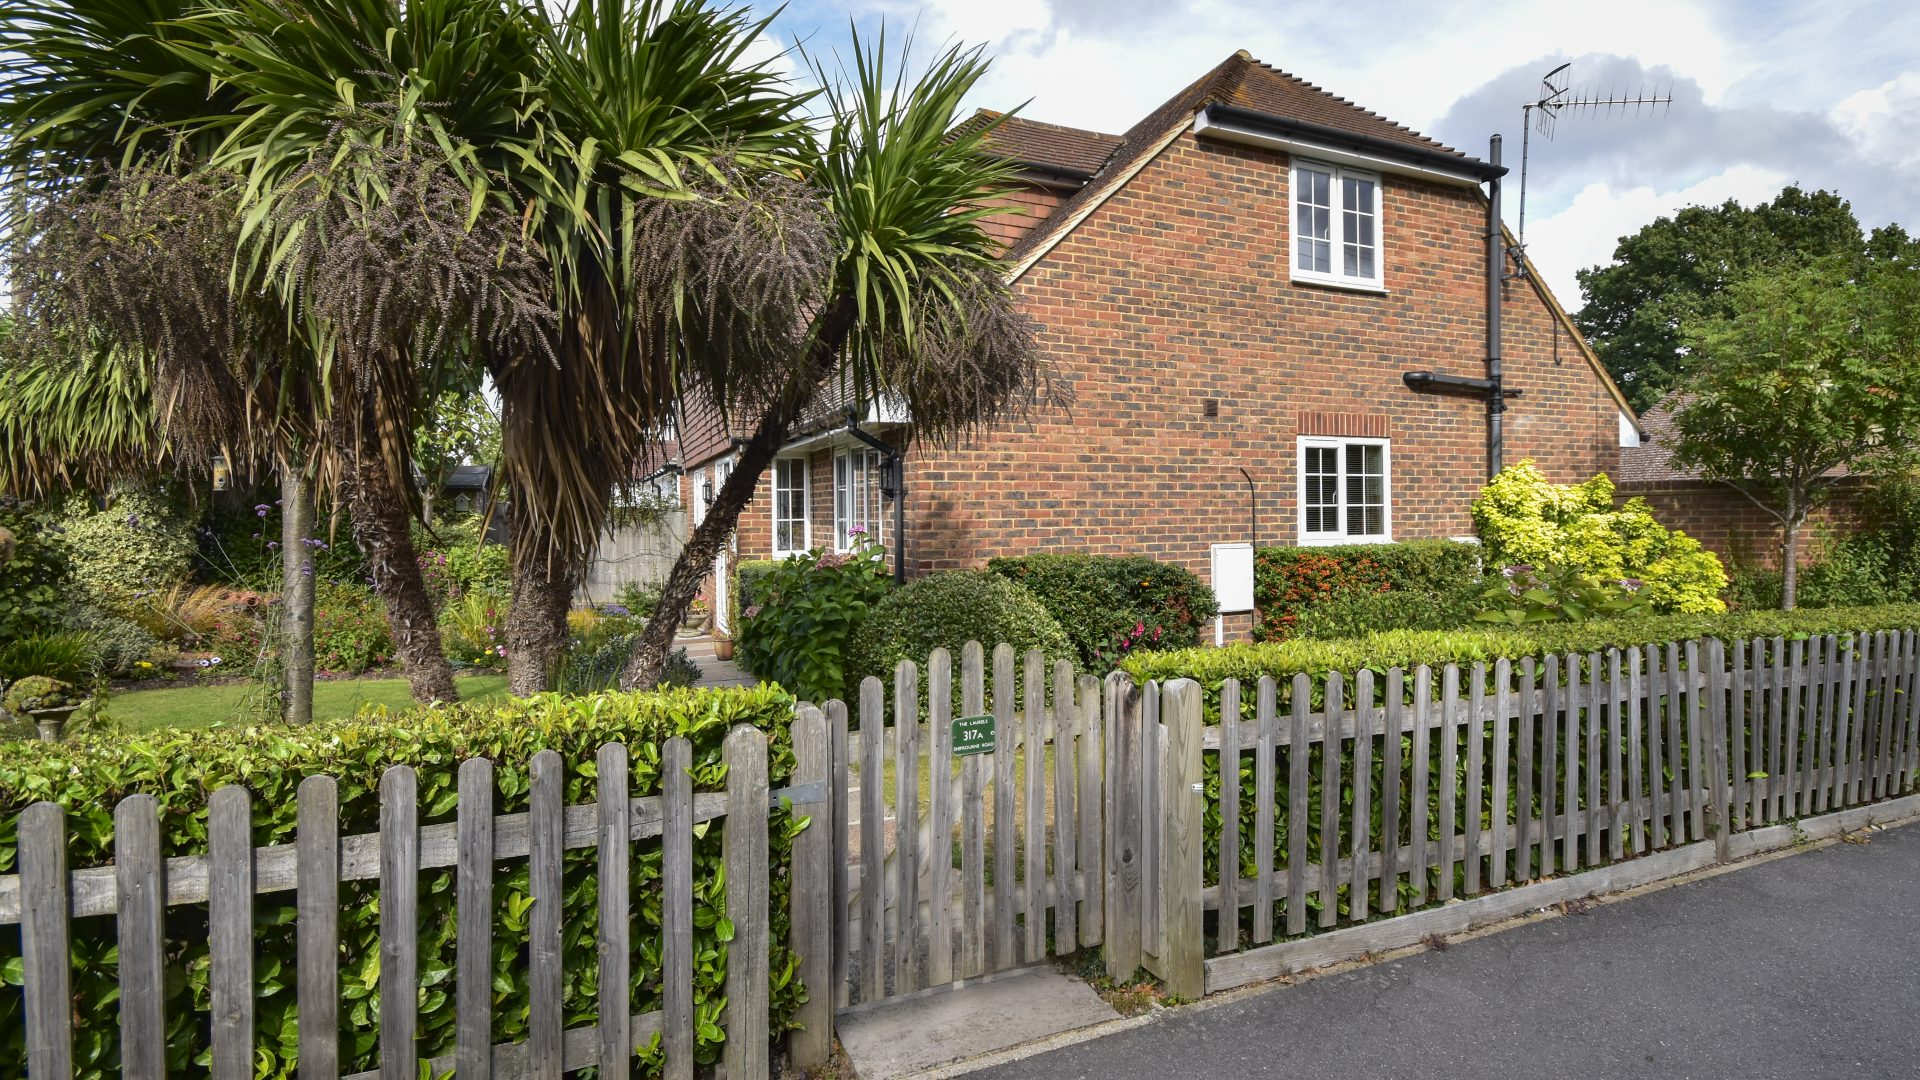 Shipbourne Road, Kent for sale with Mr and Mrs Clarke estate agent